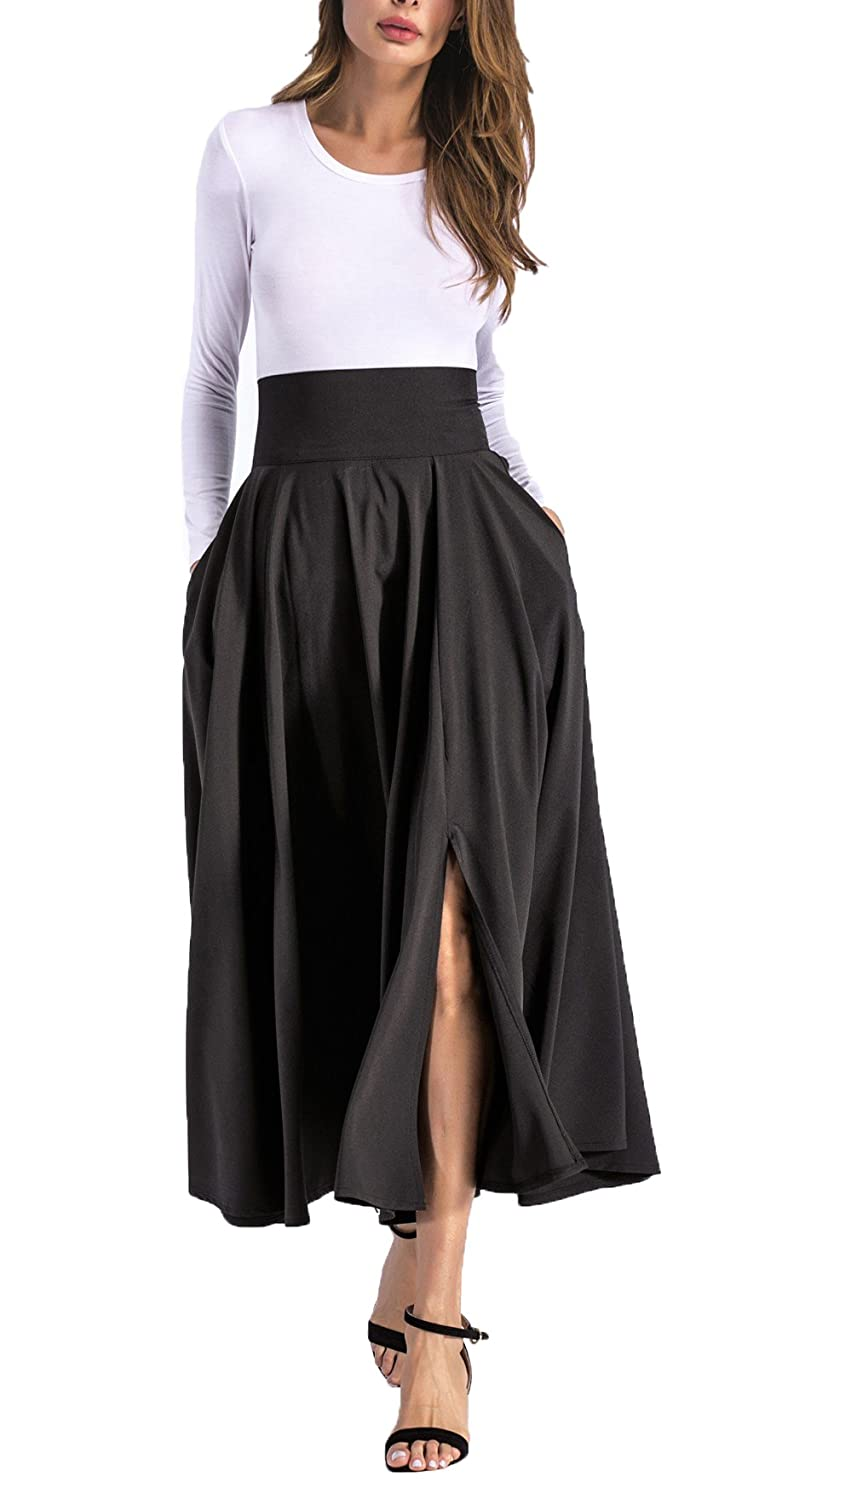 2c4449c5d984d Note  Our skirt size maybe smaller than usa size  Tag-S M L XL XXL  US  2-4 6-8 10-12 14 16  Please check the size detail before your purchase